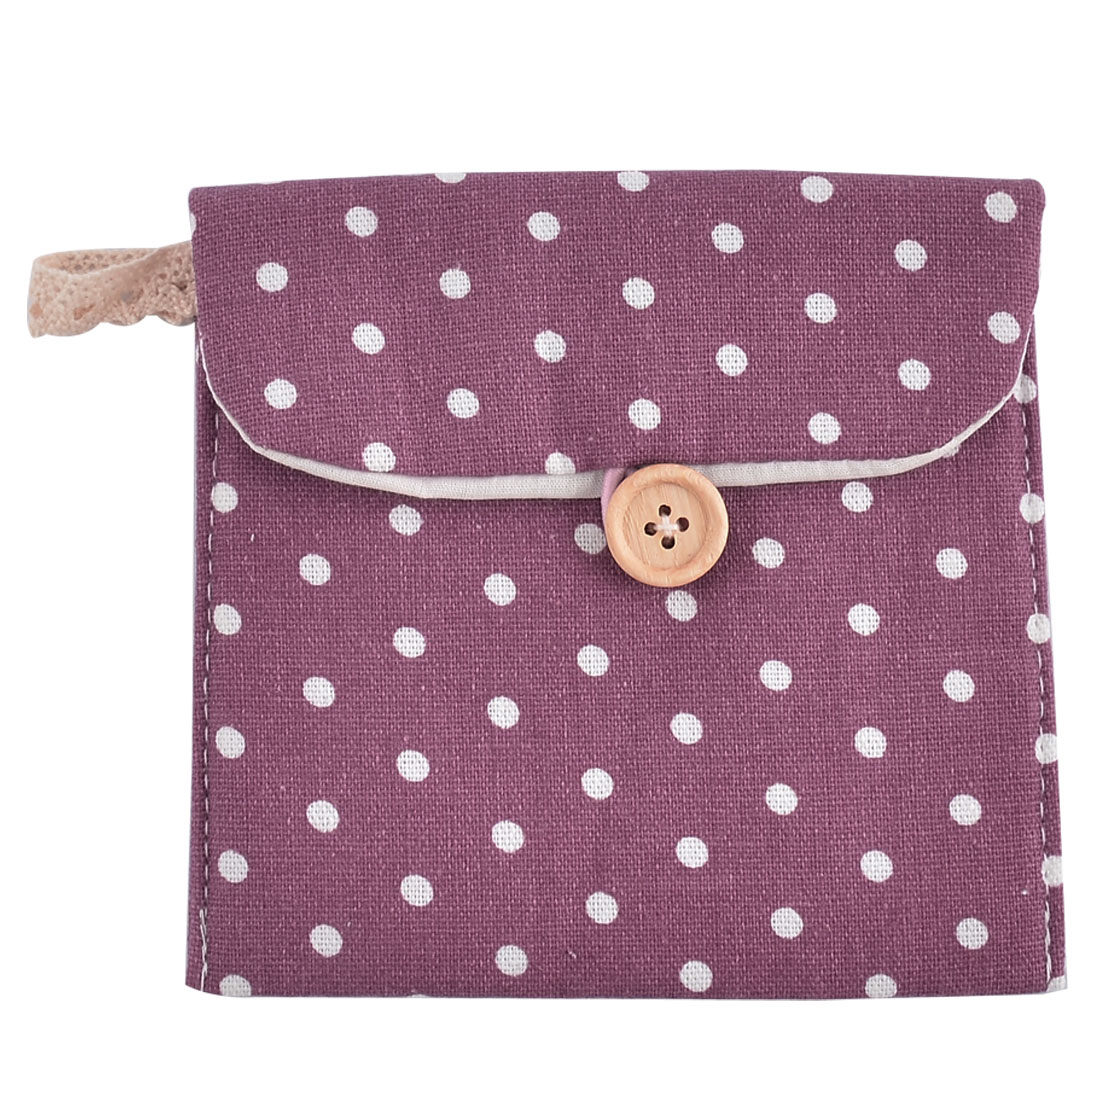 Linen Dots Pattern Button Closure Sanitary Napkin Pad Bag Pouch Purple 2 Pcs